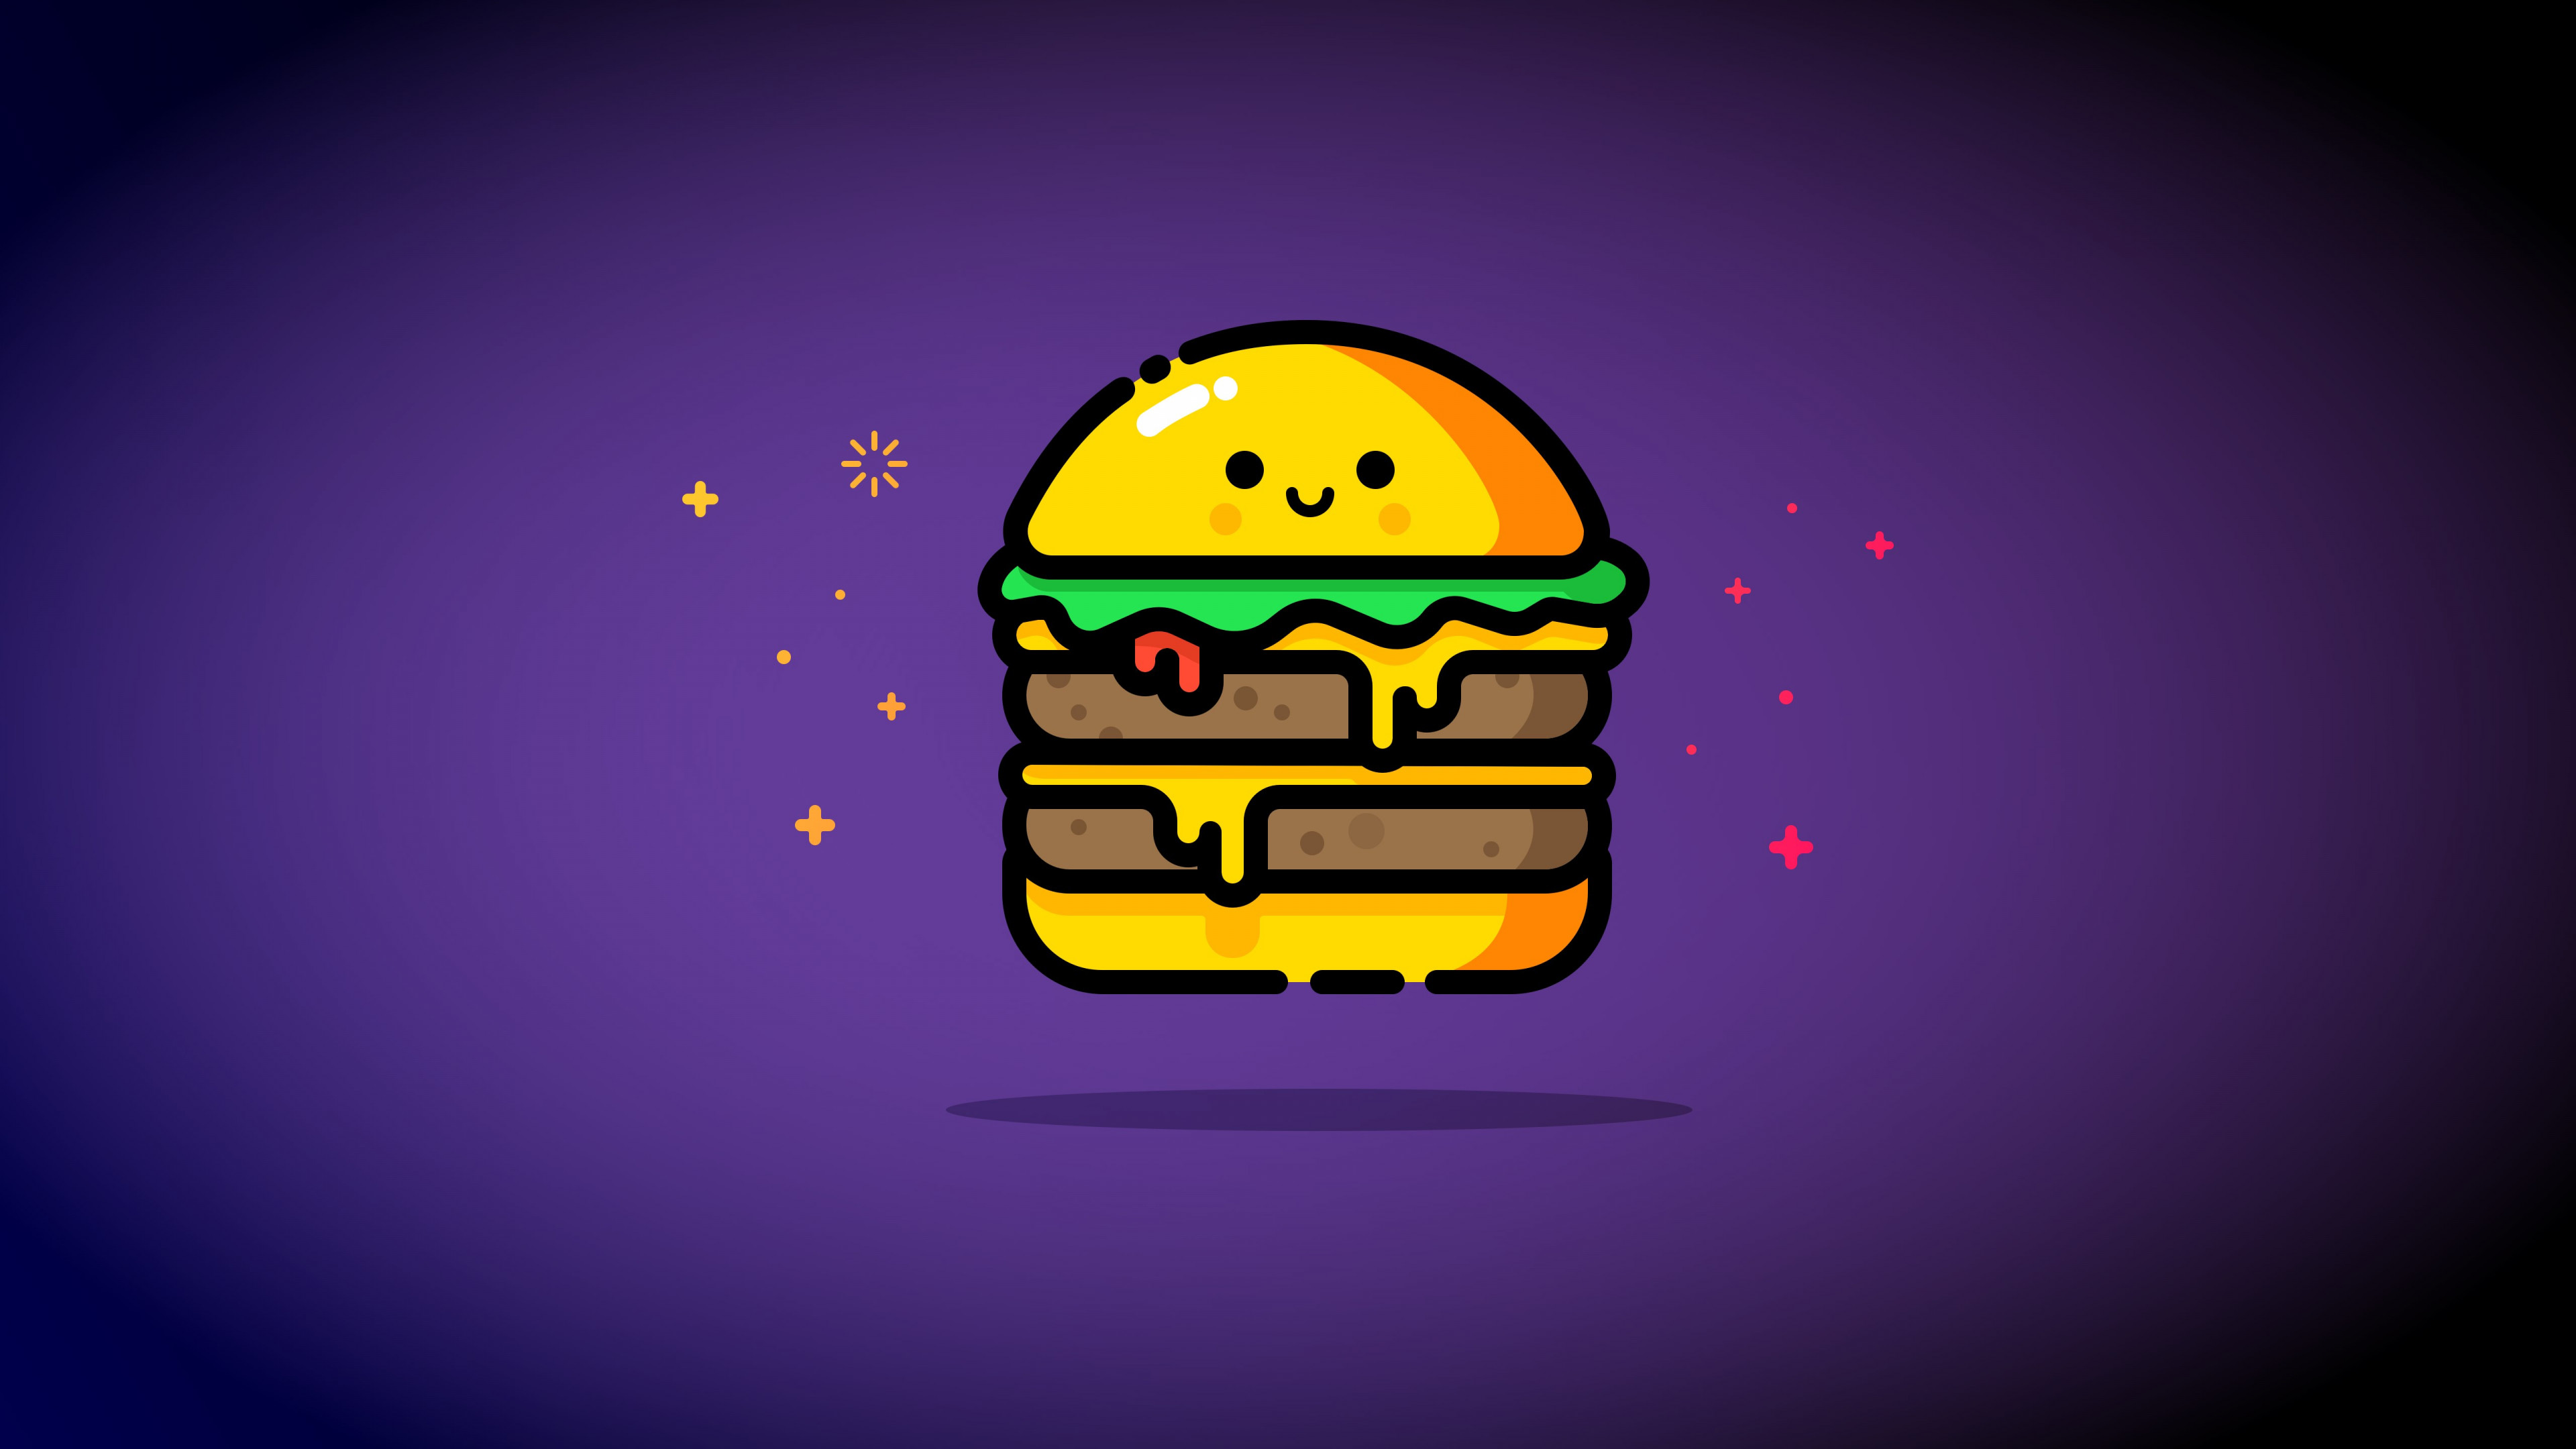 Double cheese wallpaper 3840x2160